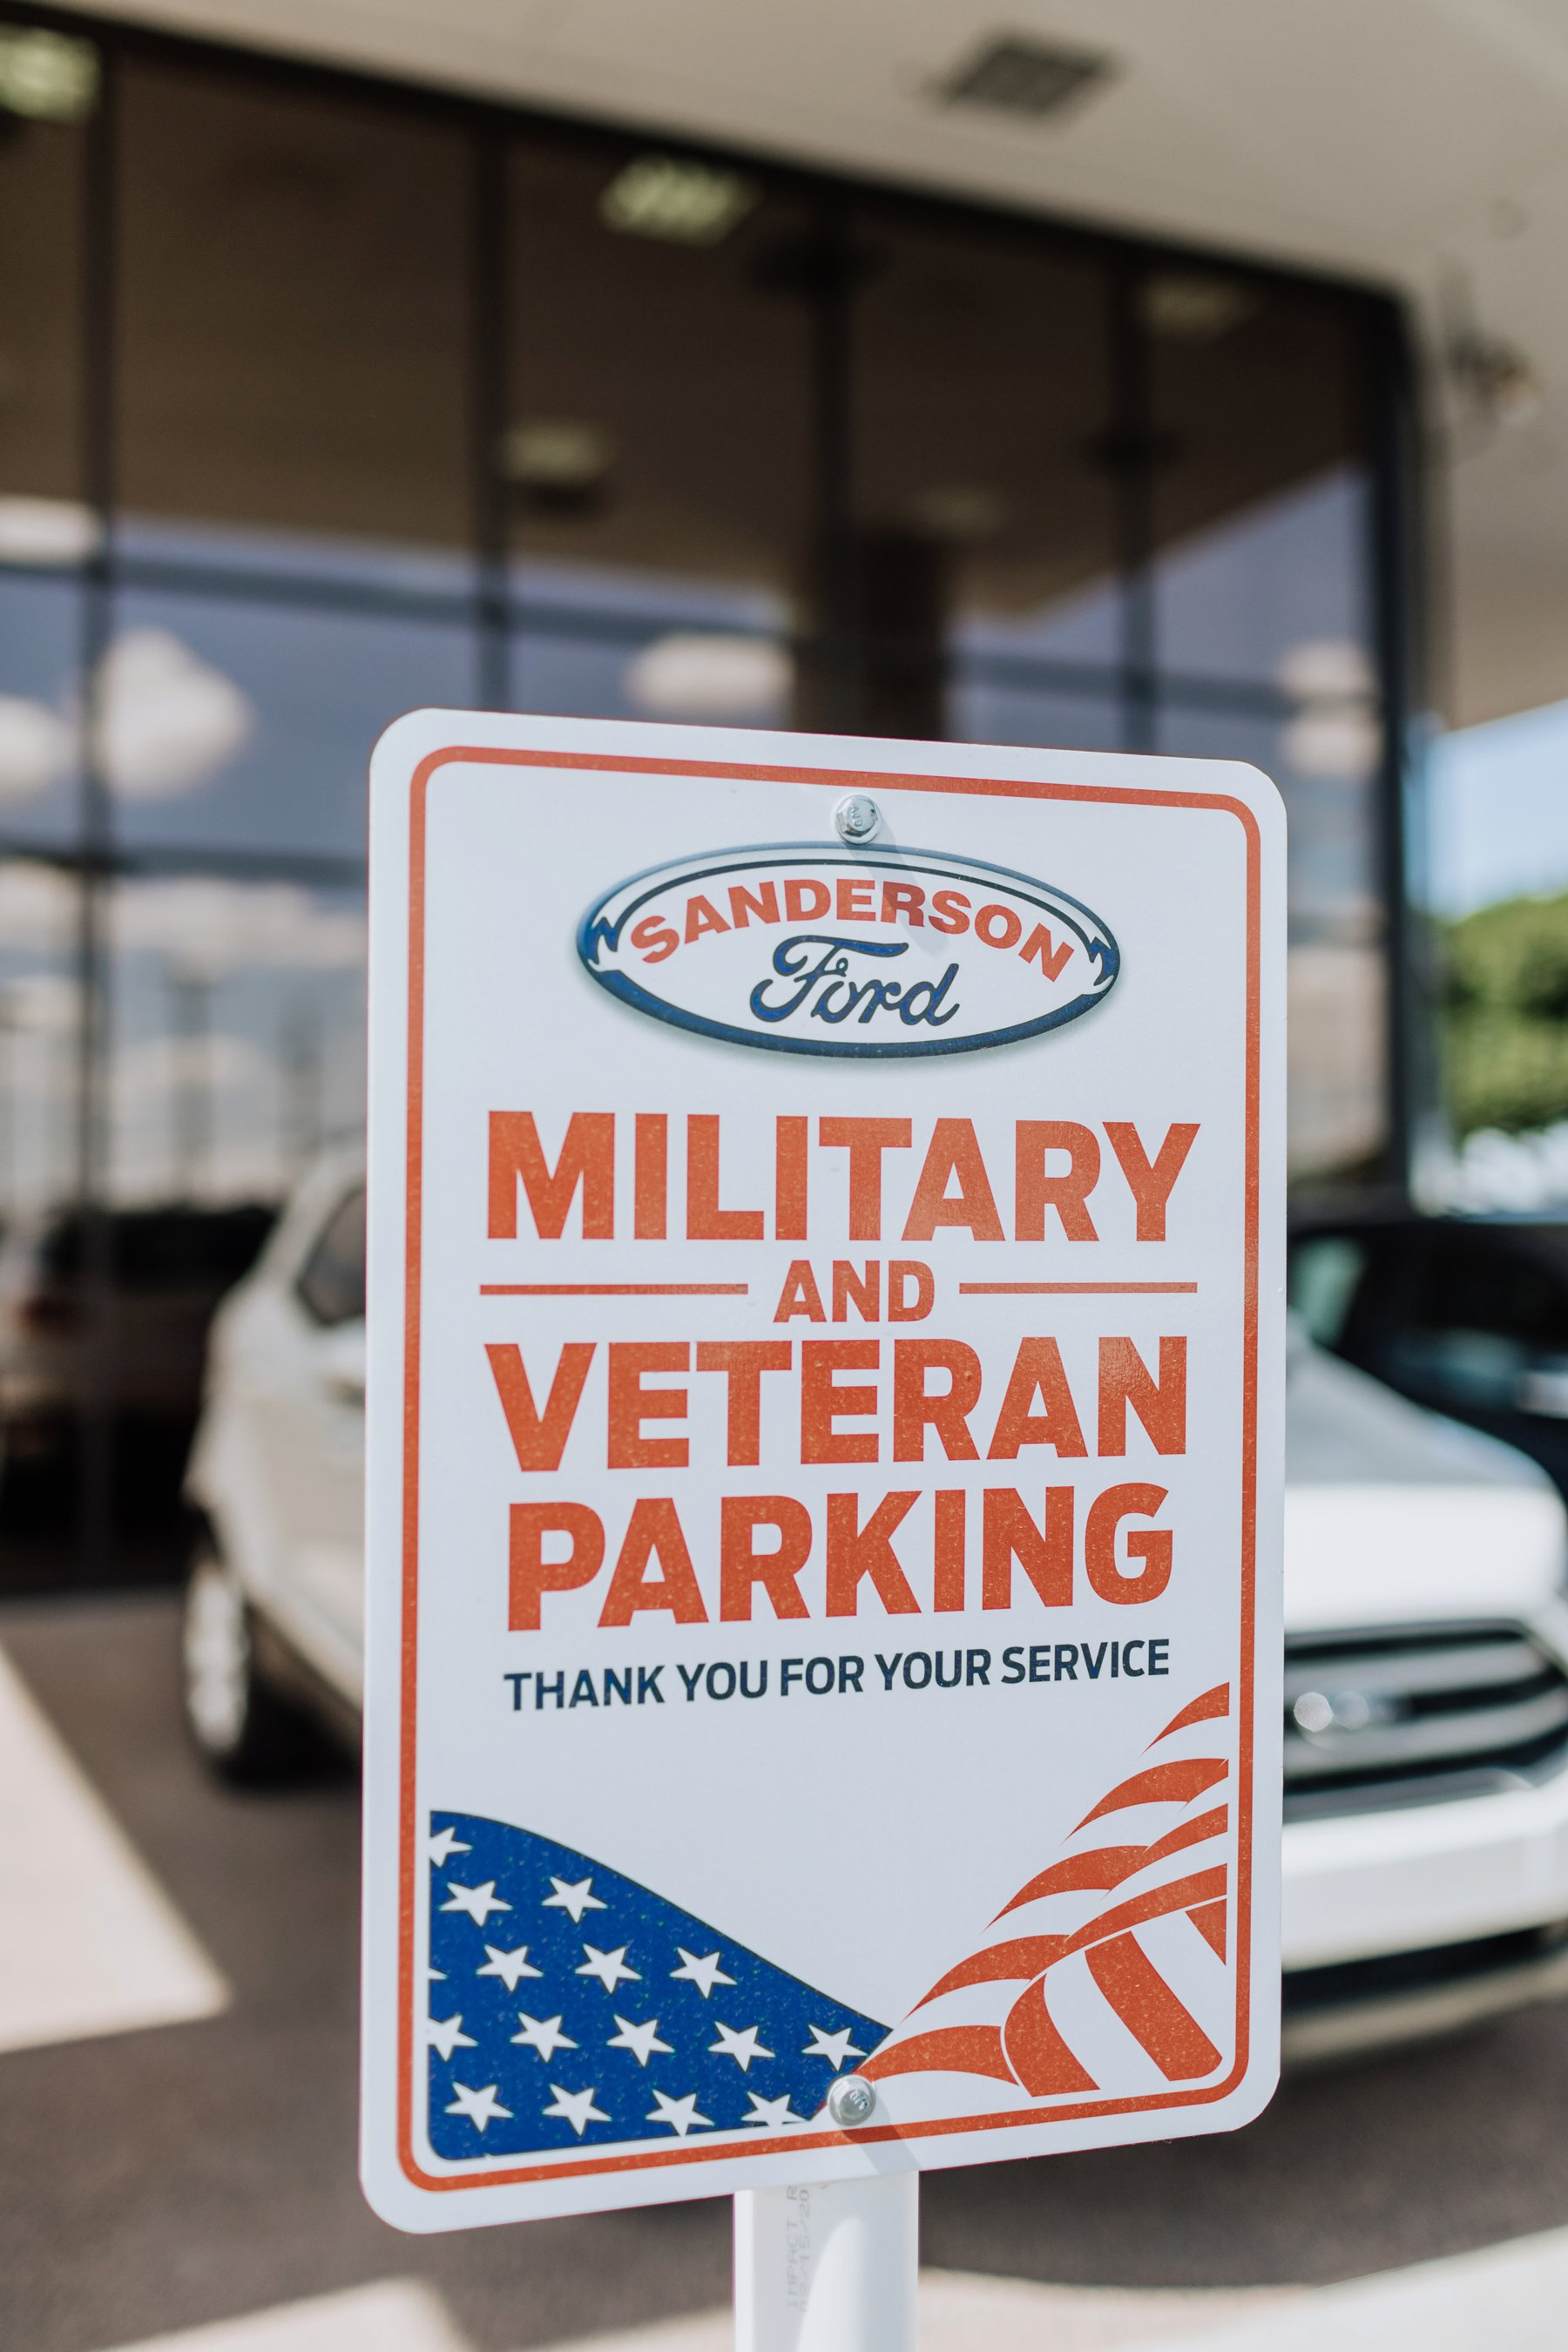 military and veteran parking at Sanderson Ford sign